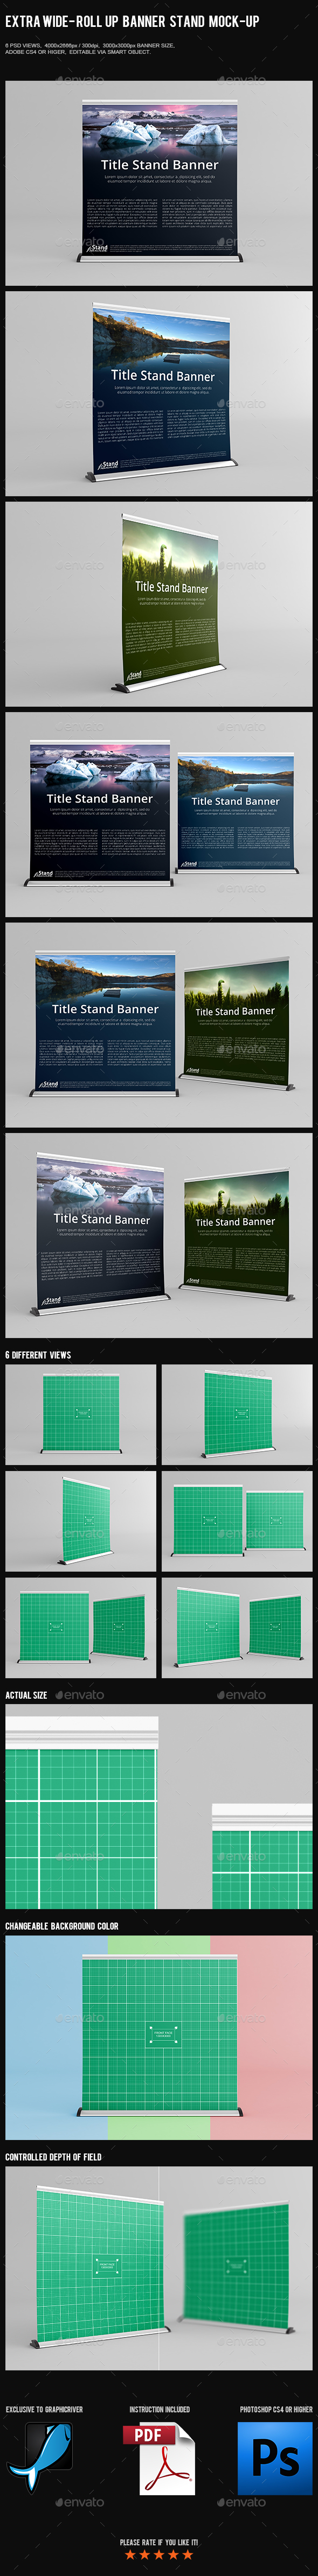 Extra Wide - Roll Up Banner Stand Mock-Up - Product Mock-Ups Graphics